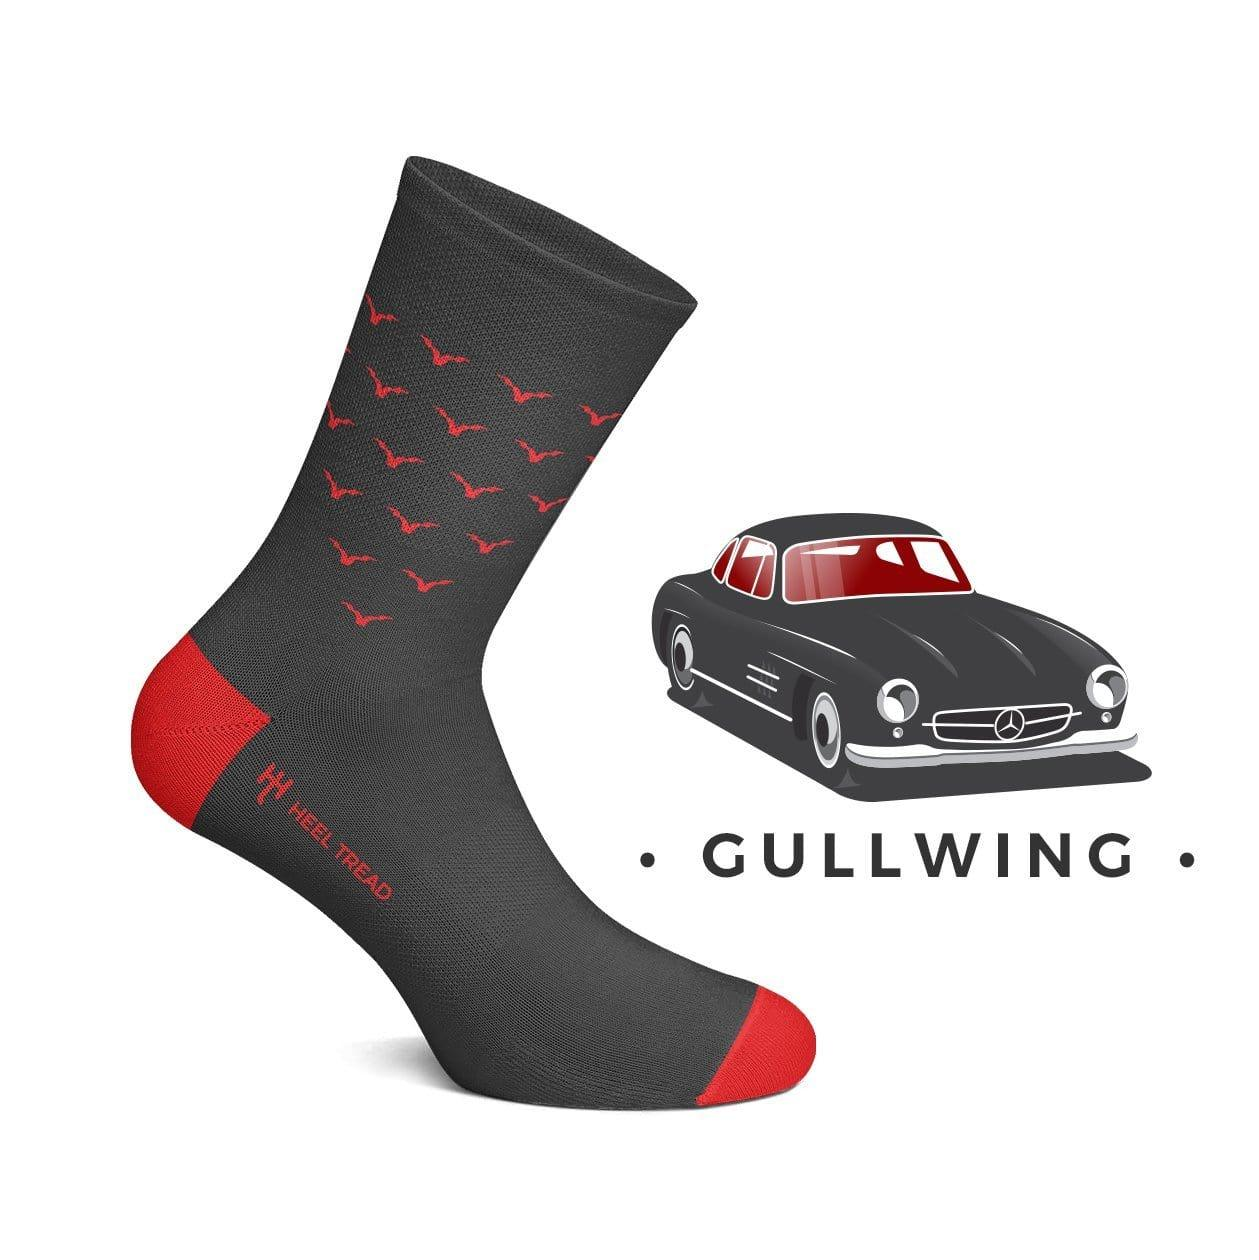 GULLWING SOCKS - Corleon